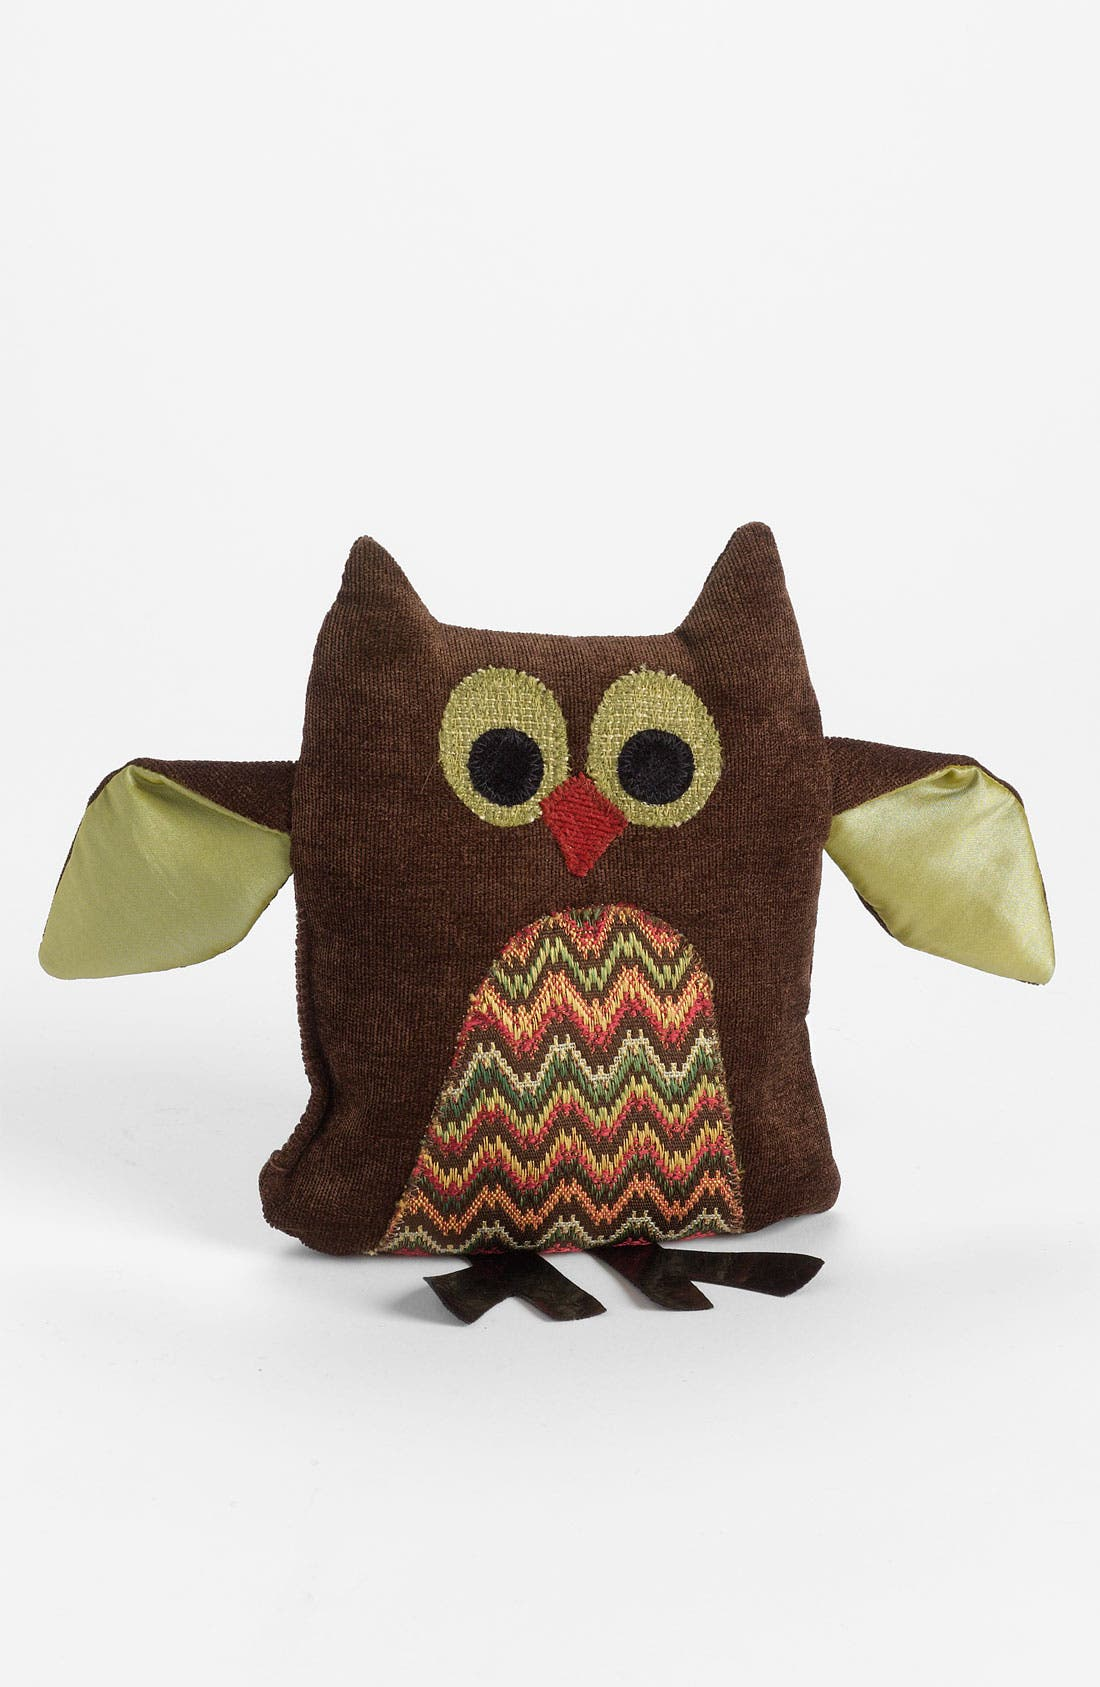 Alternate Image 1 Selected - Woof & Poof Chevron Pattern Owl Decoration